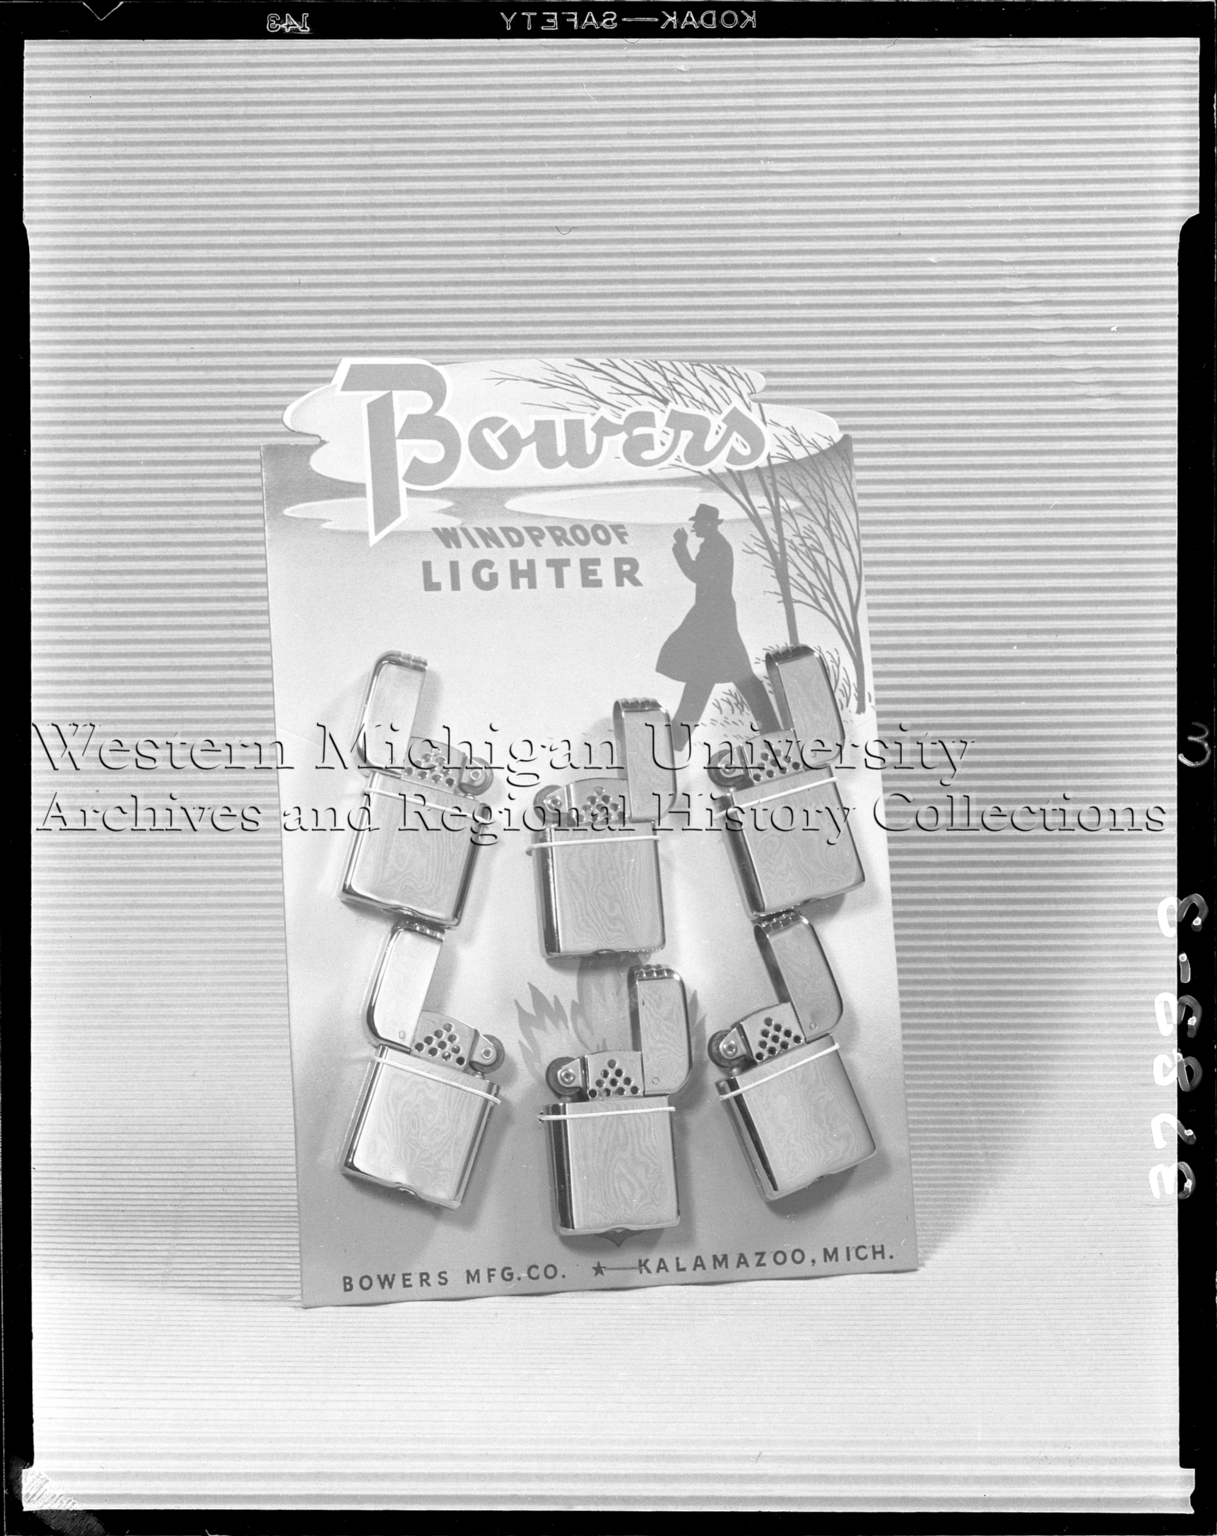 Bowers Manufacturing Company, display of windproof lighters